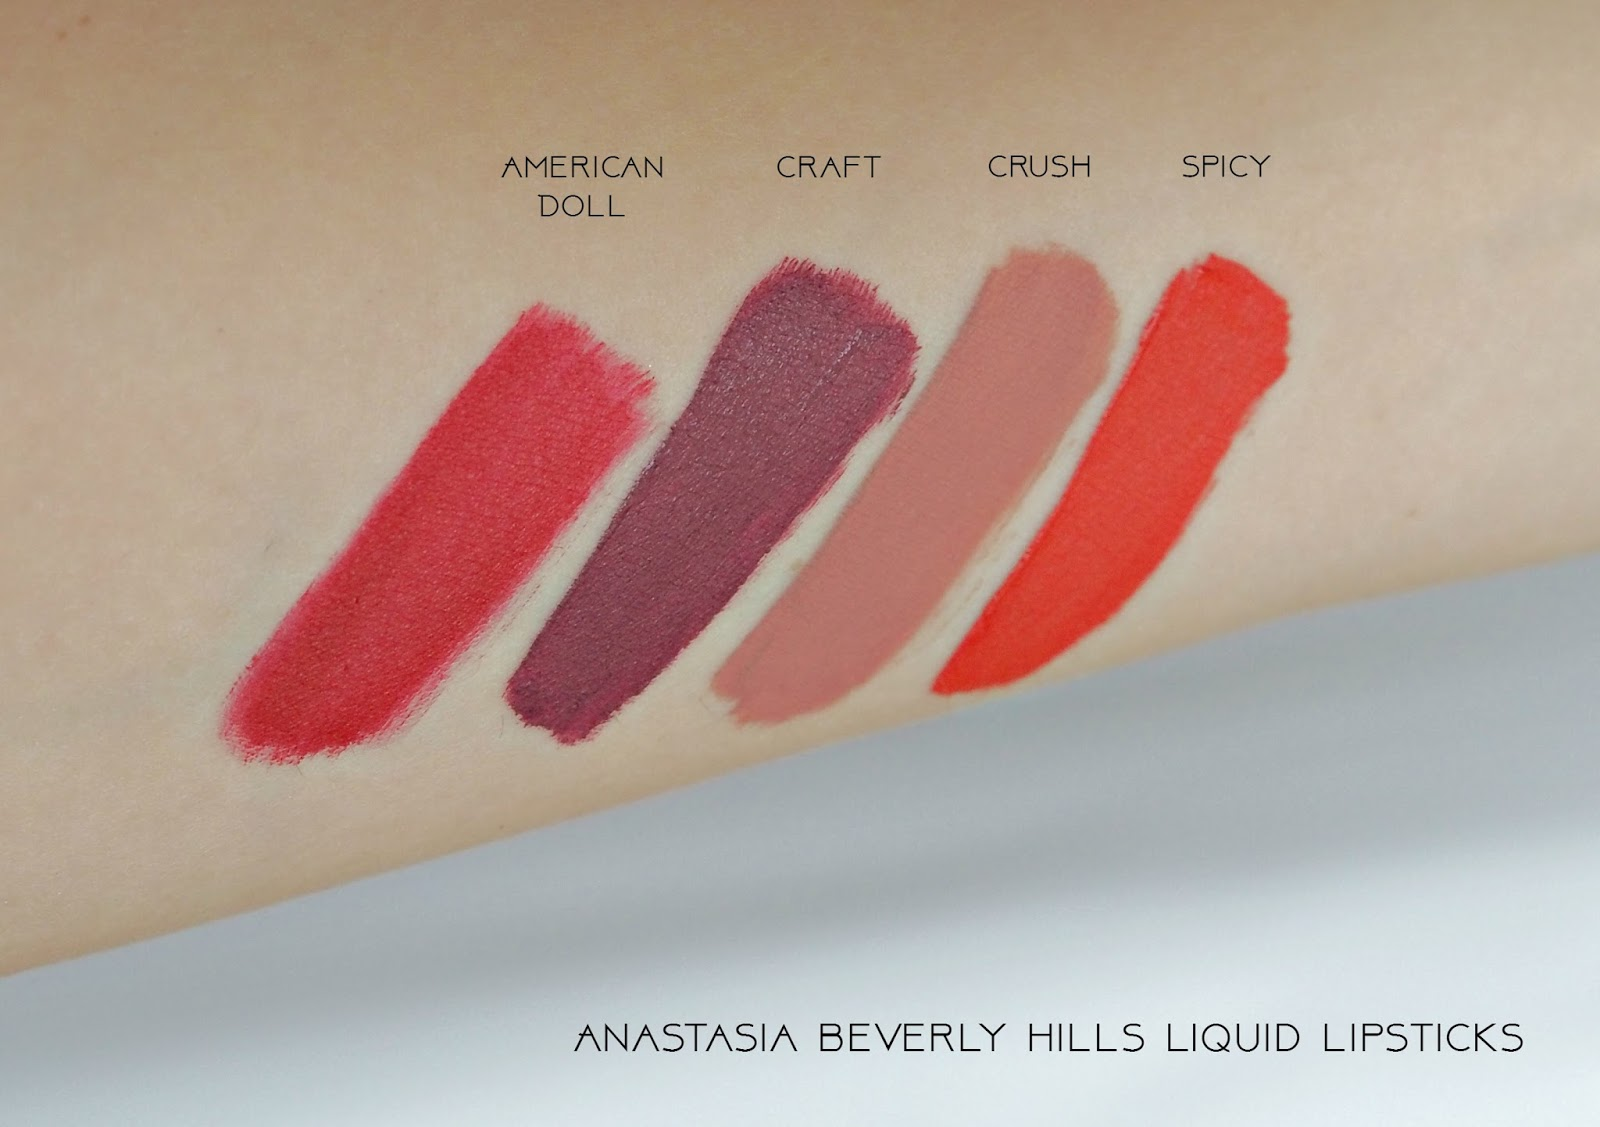 Anastasia Beverly Hills Liquid Listicks in Craft, American Doll, Crush and Spicy, swatches, ABH